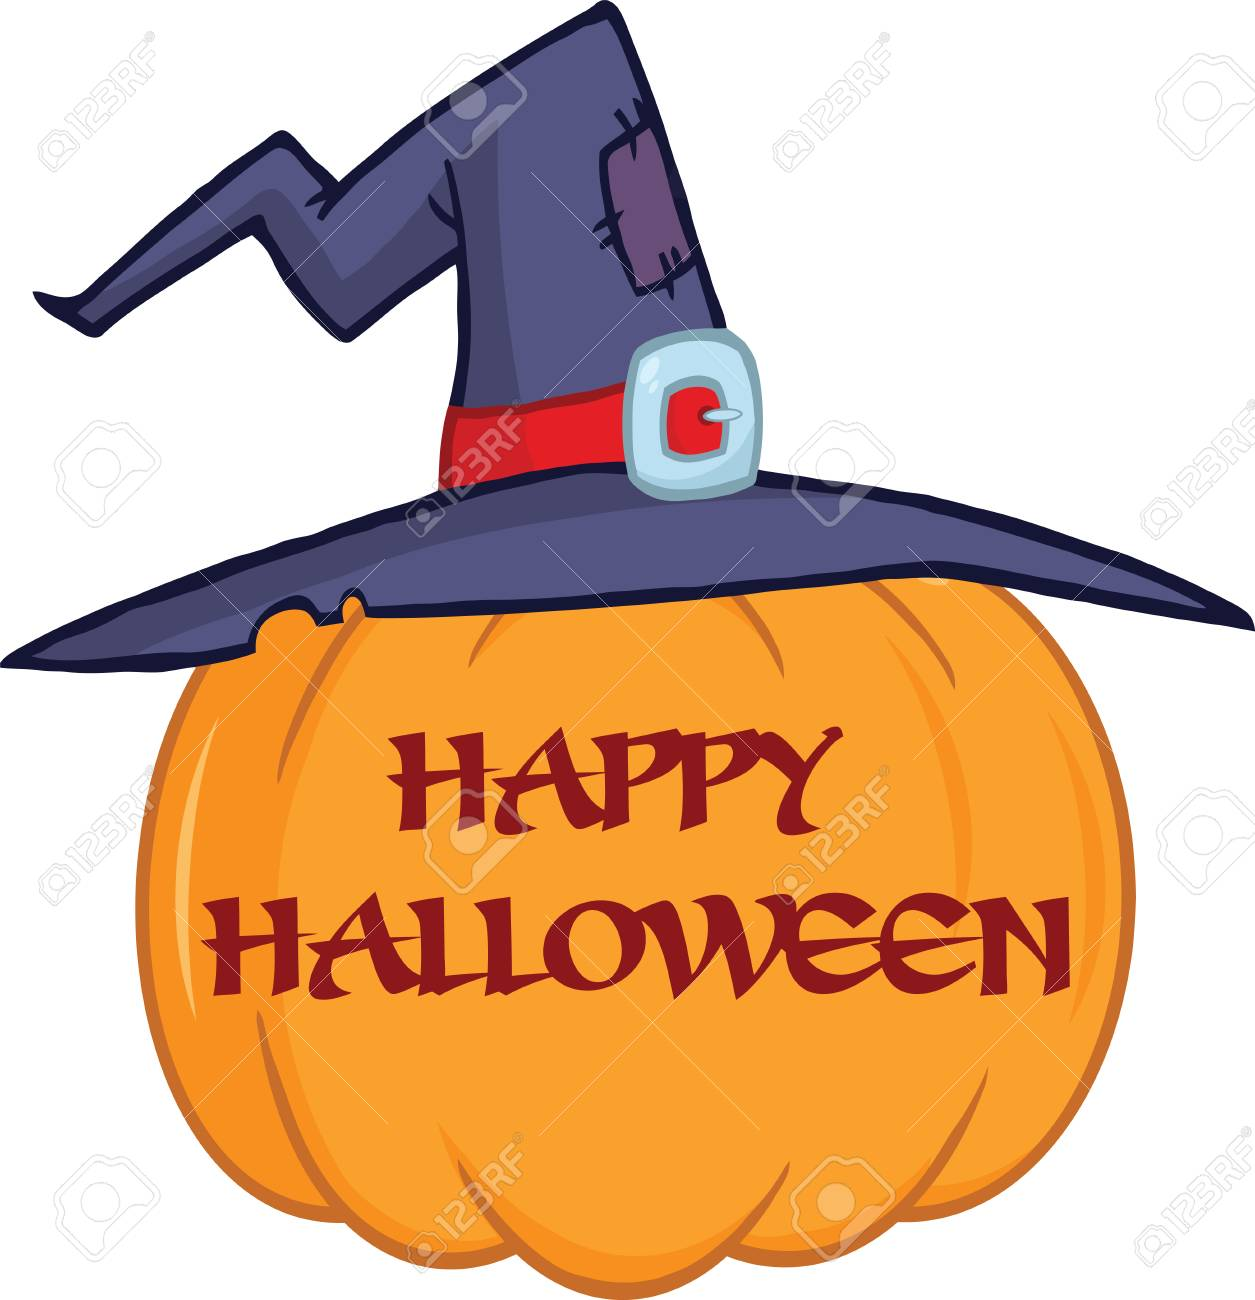 Pumpkin With A Witch Hat And Text Cartoon Illustration Stock Vector - 22240767